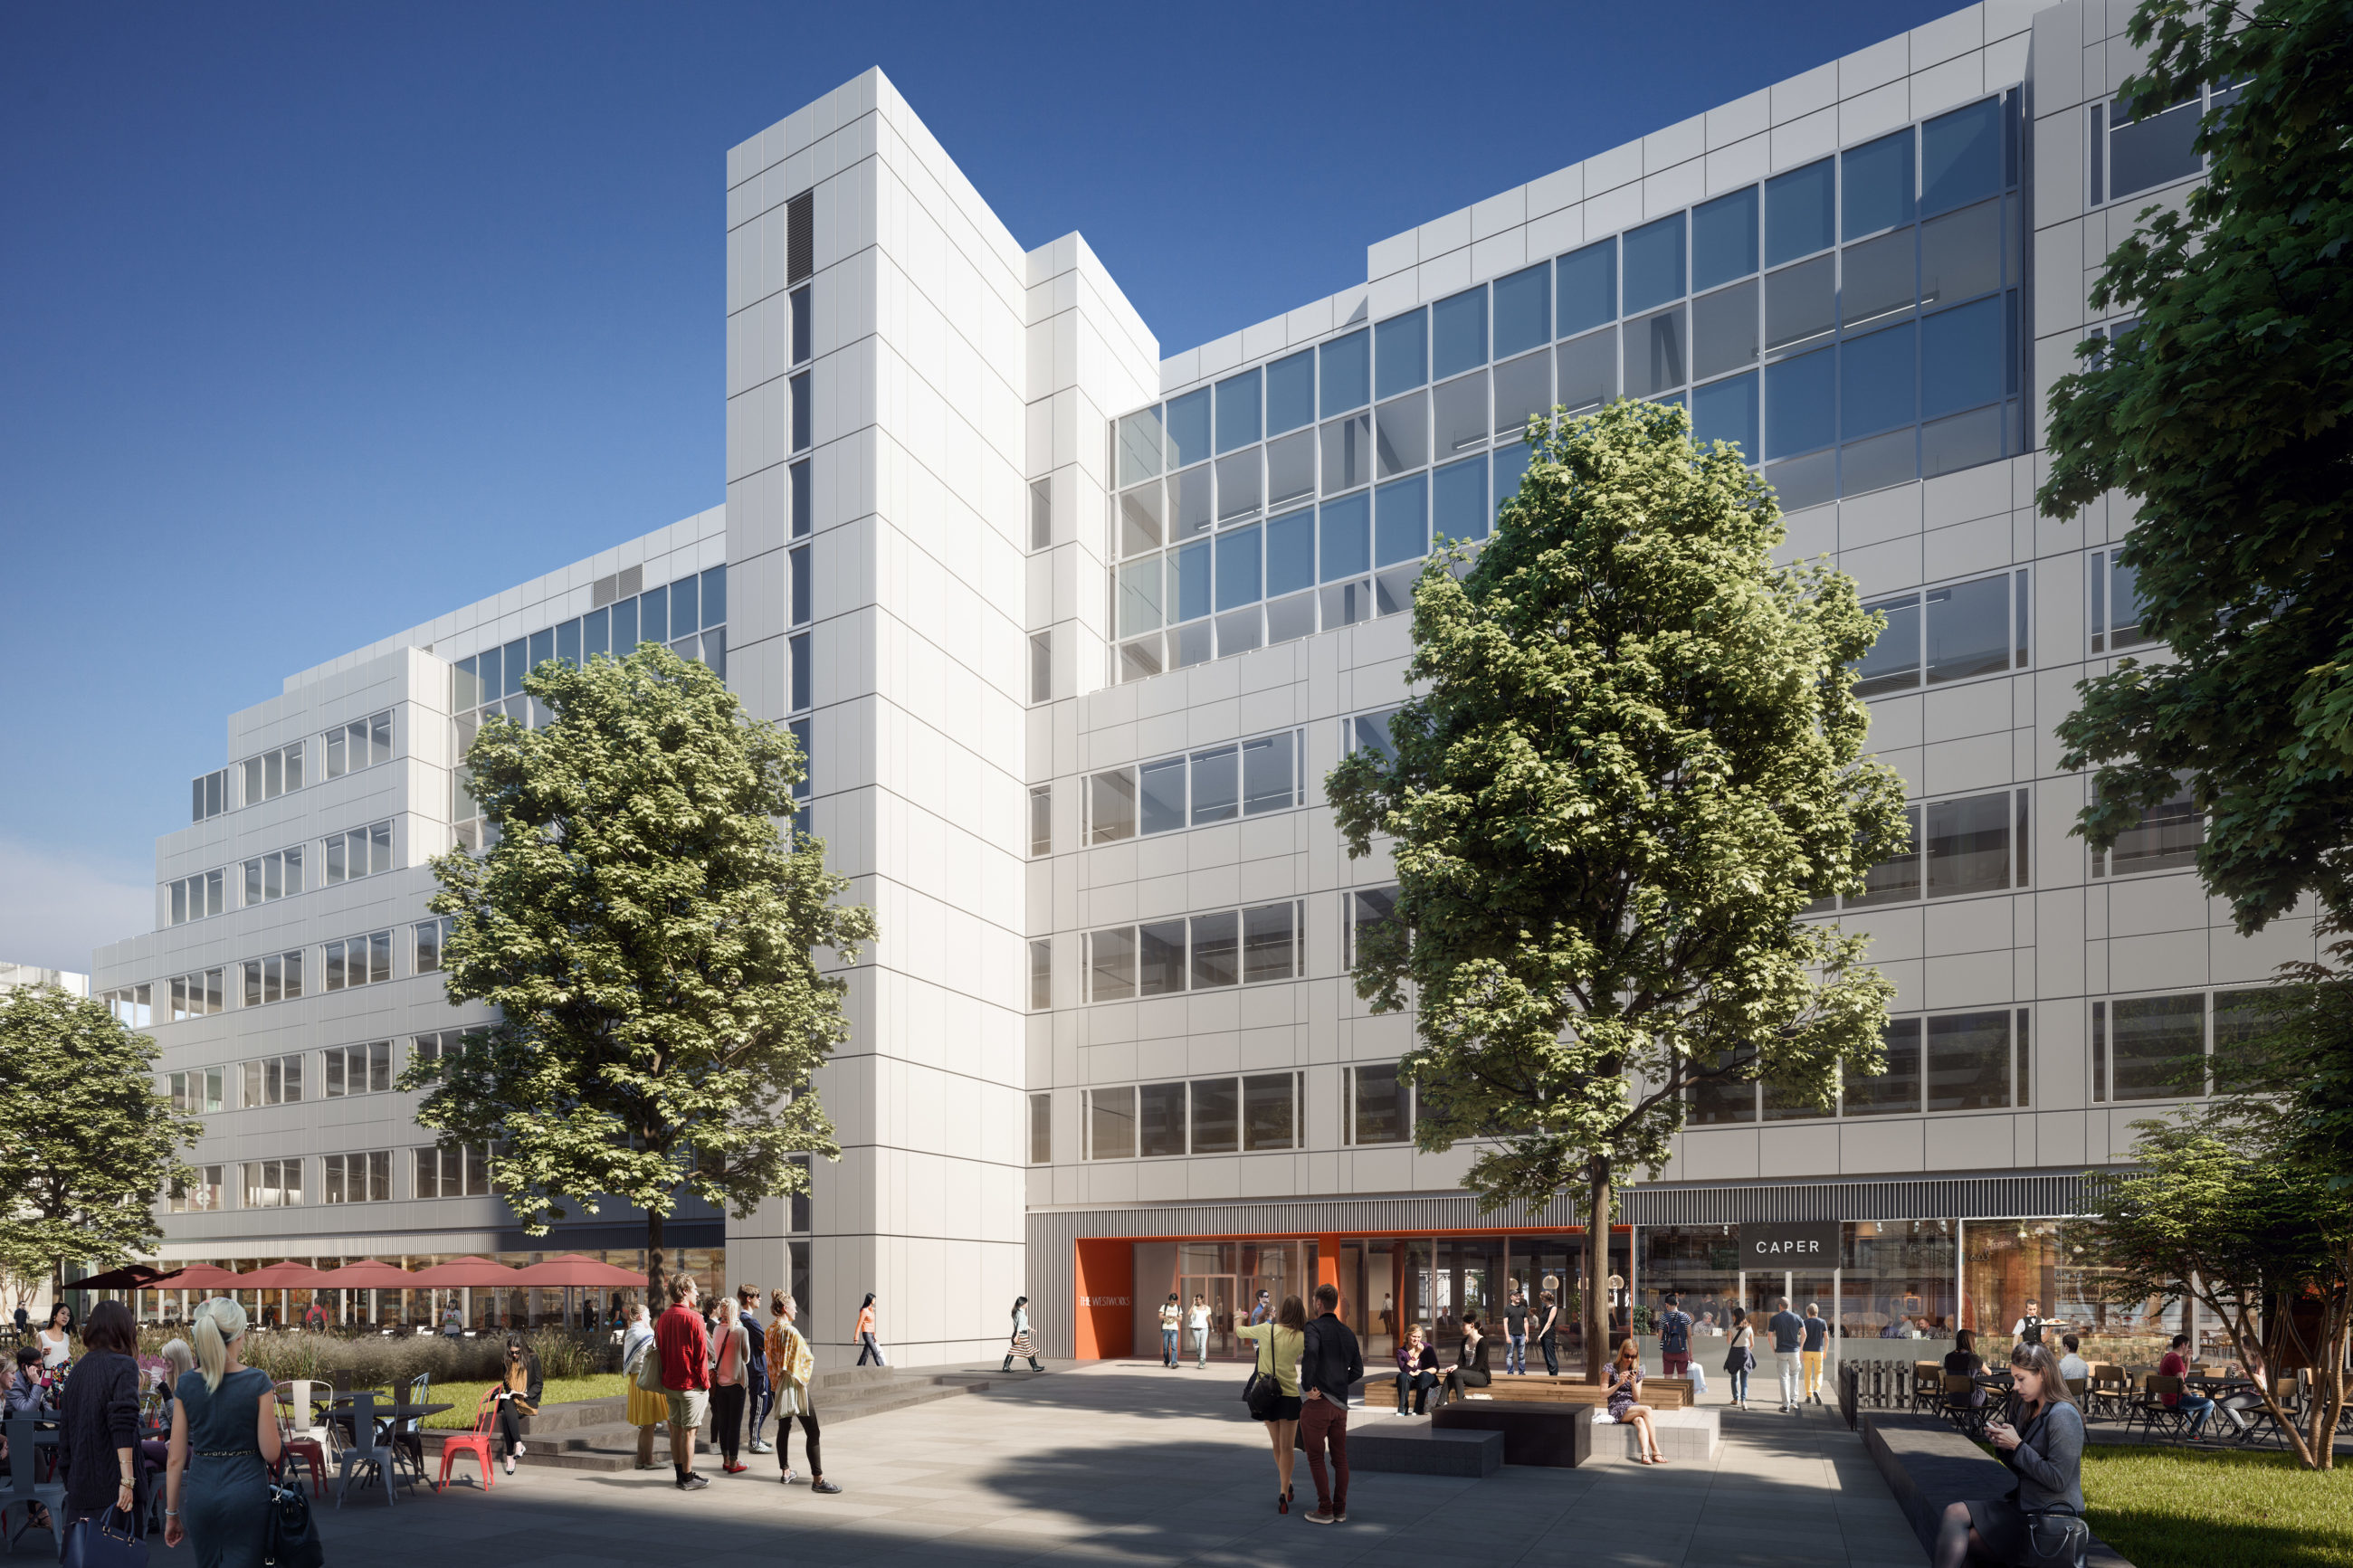 Open House London comes to White City Place Feature Image